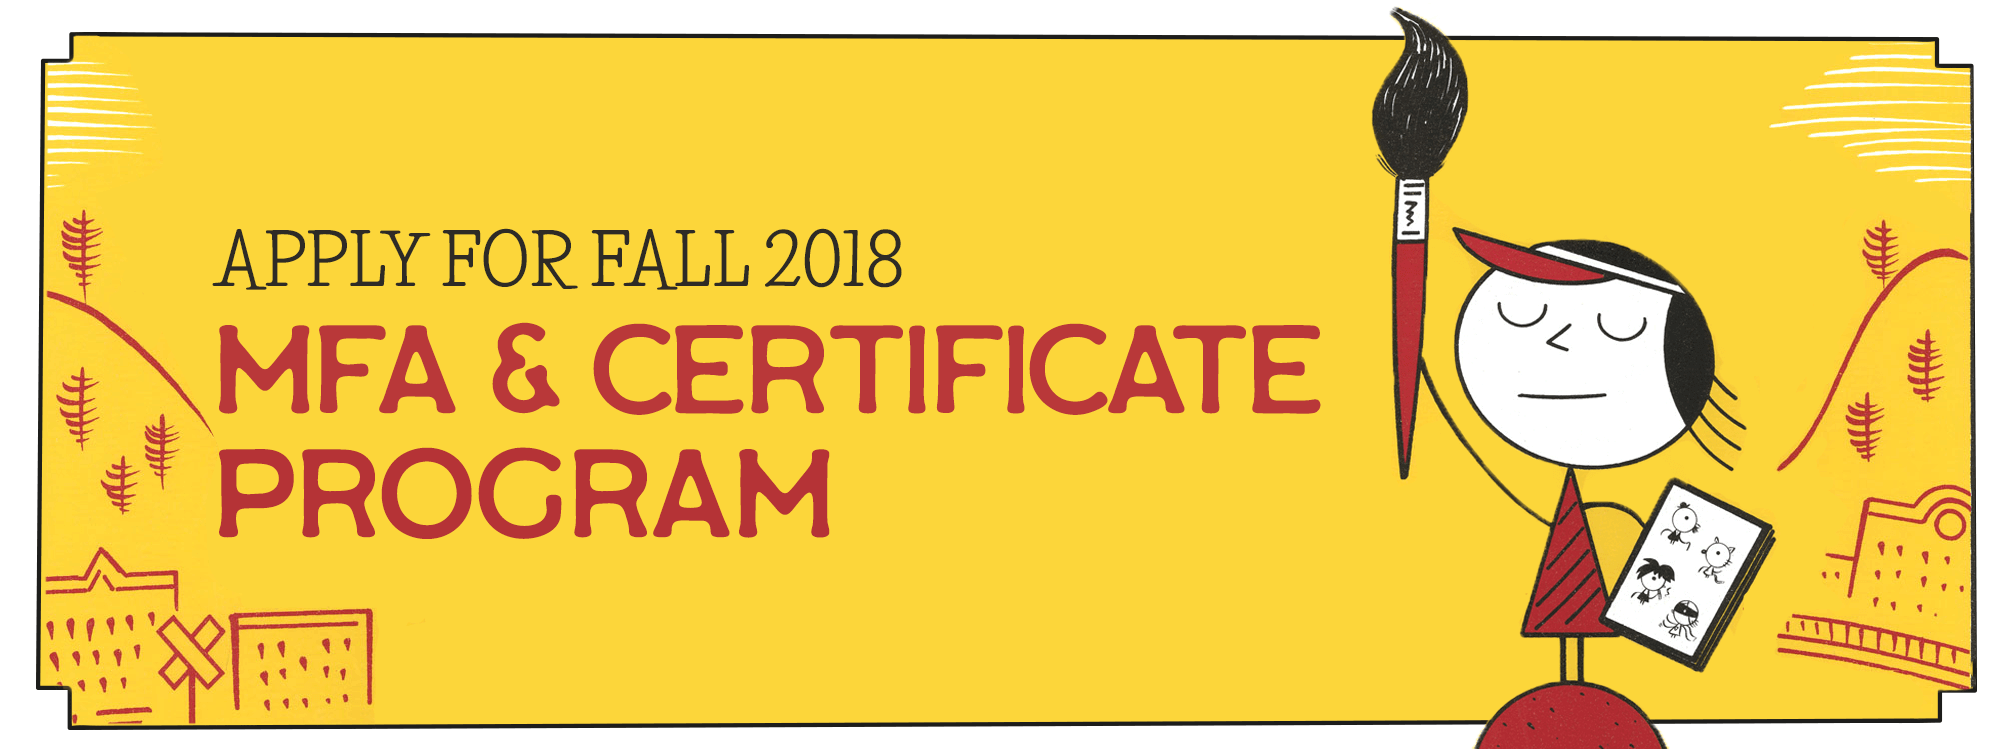 Apply for Fall 2018 MFA and Certificate Program